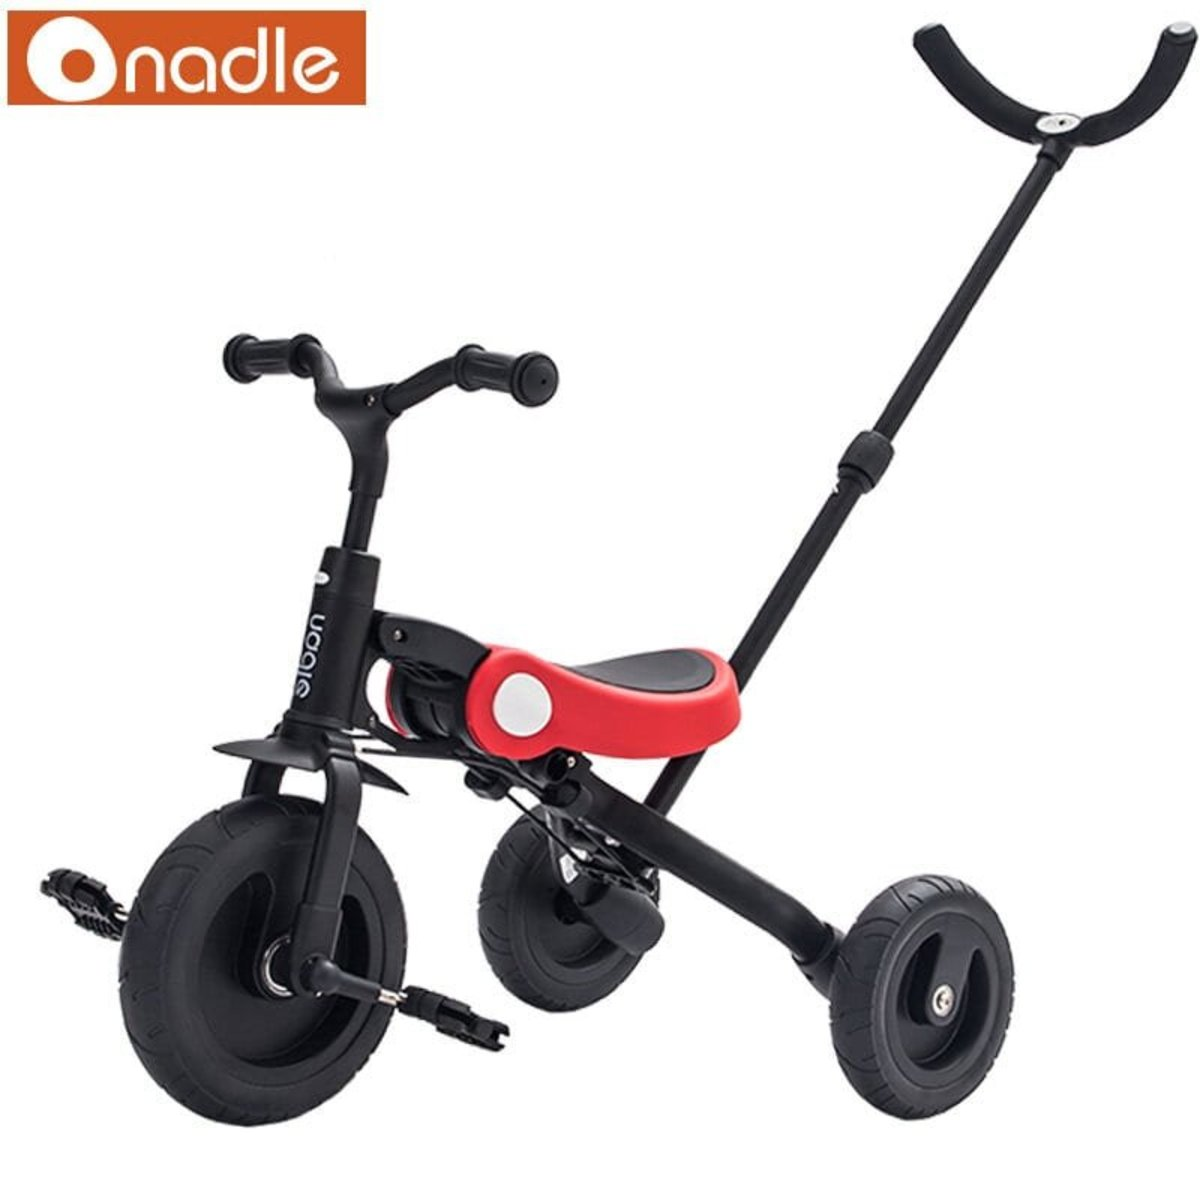 3-in-1 kids folding tricycle - Red